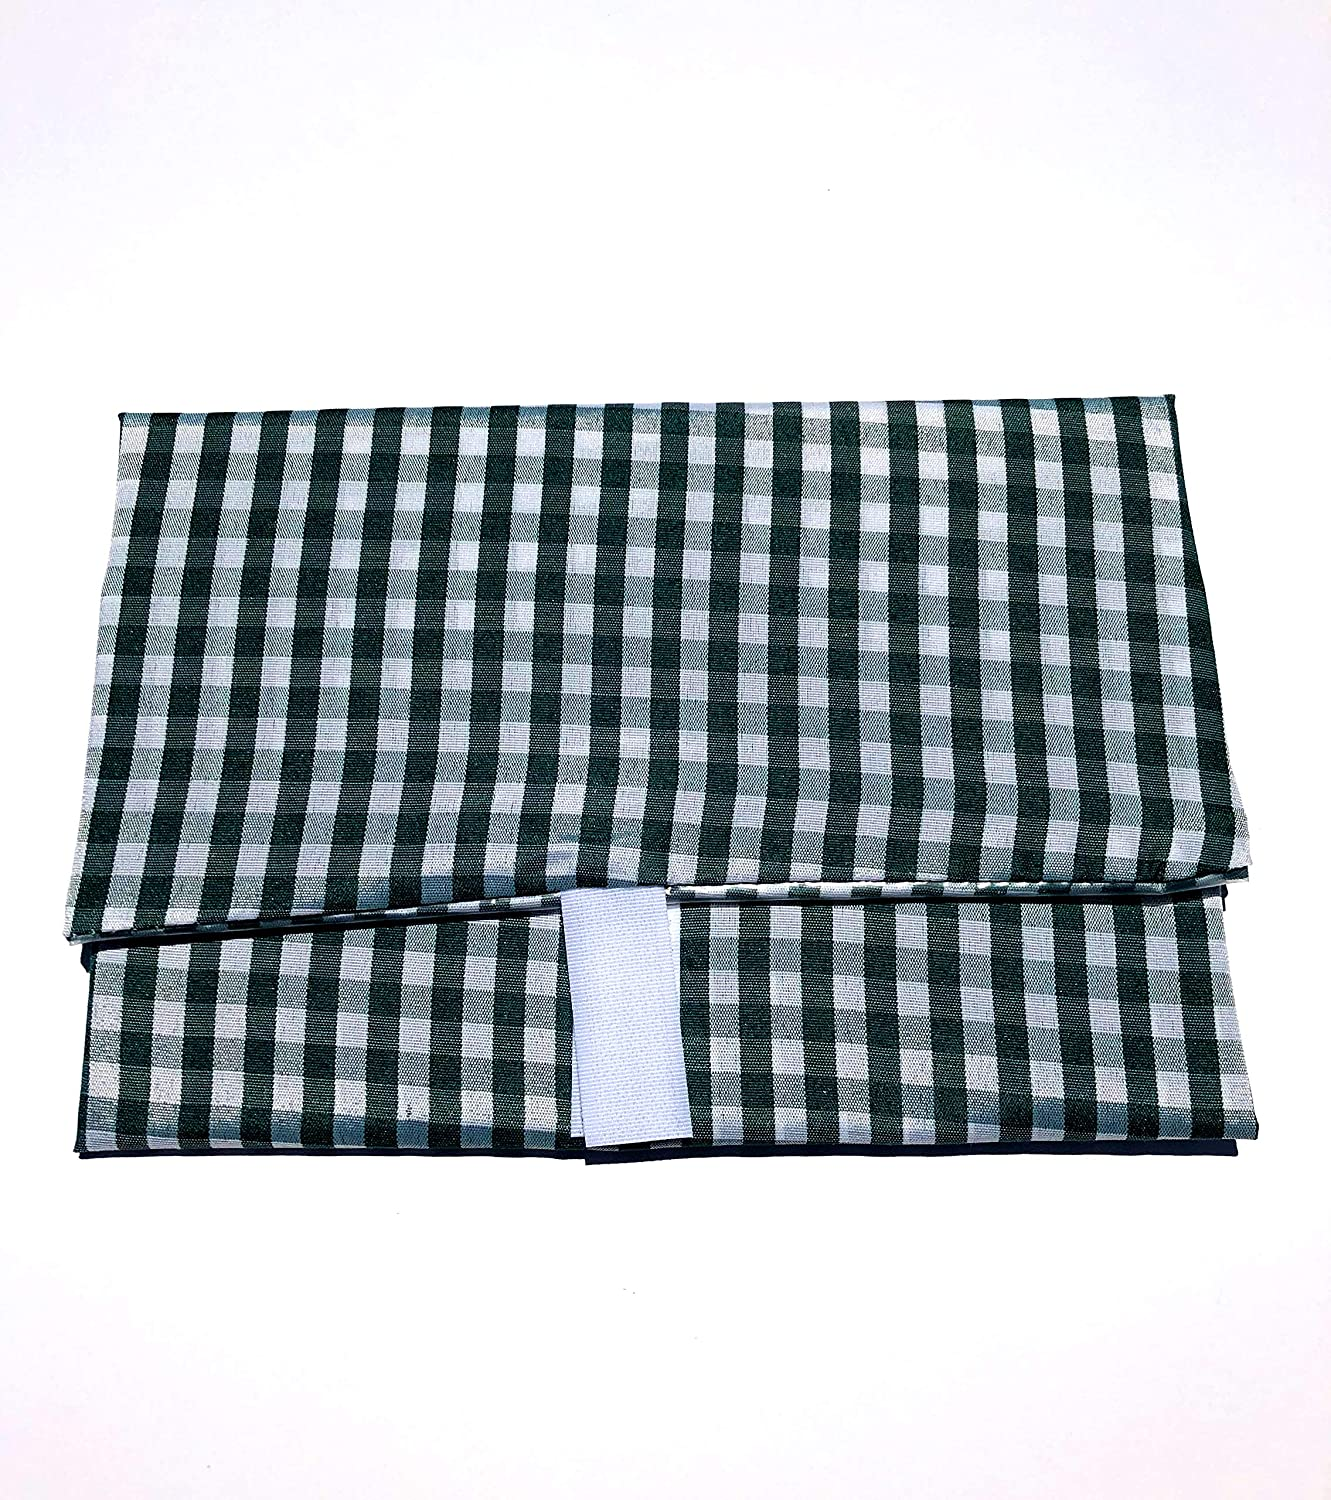 WRAP-N-MAT, Extra Large, Reusable Food Wrap and Placemat (Green Gingham)